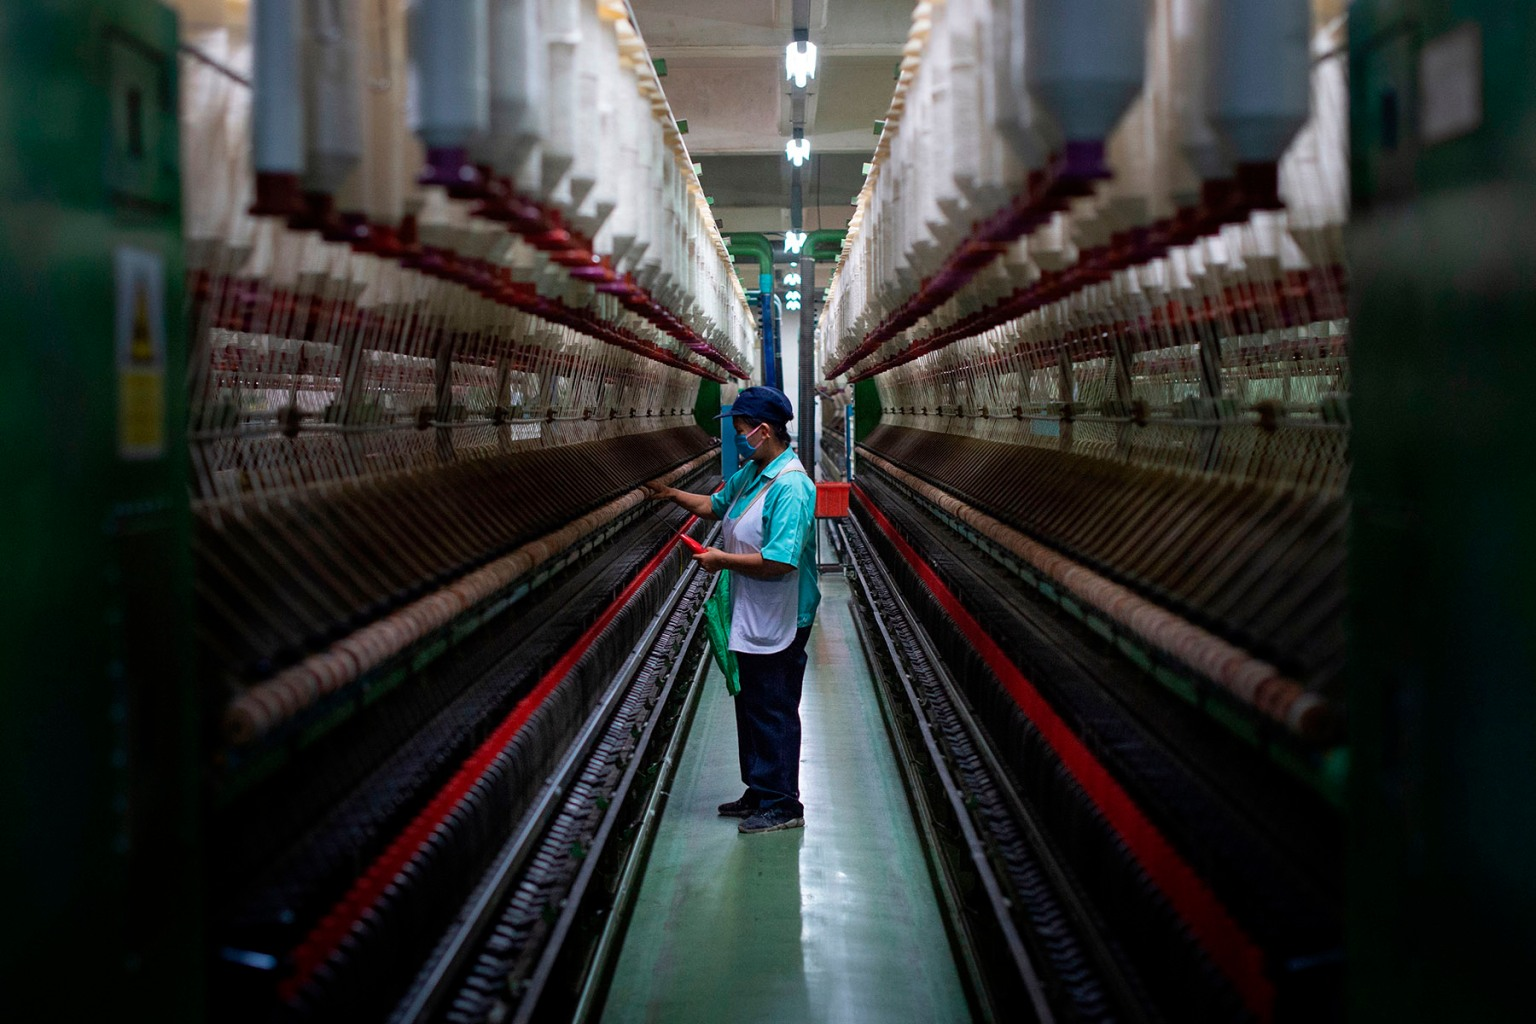 A worker monitors a spinning machine at a textile factory in Pathum Thani, Thailand, on Sept. 23. (LILLIAN SUWANRUMPHA/AFP/Getty Images)